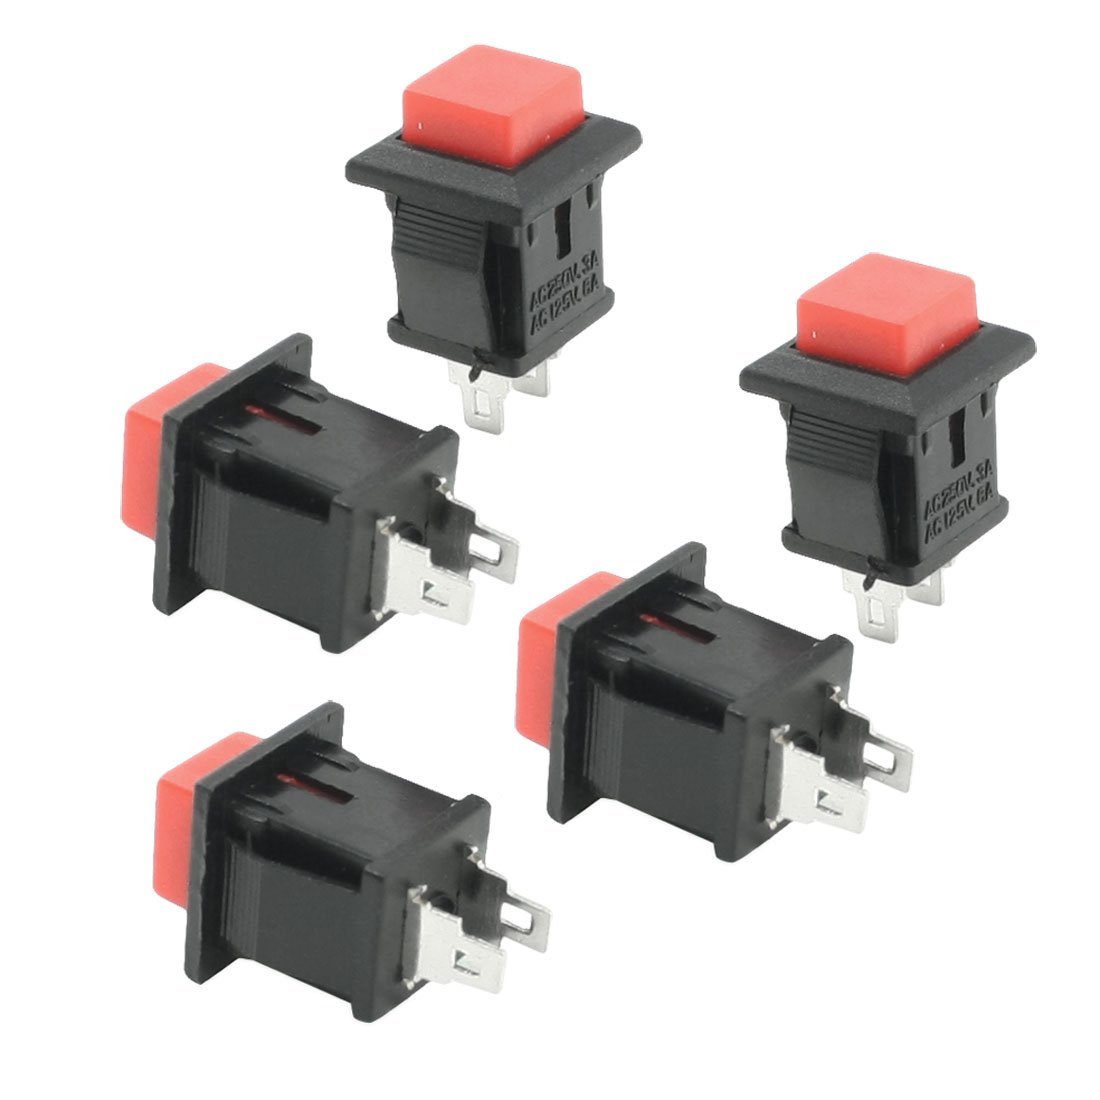 5 Pcs Red Momentary Dash OFF-ON Push-Button Car Switch AC 3A/125V 1A/250V